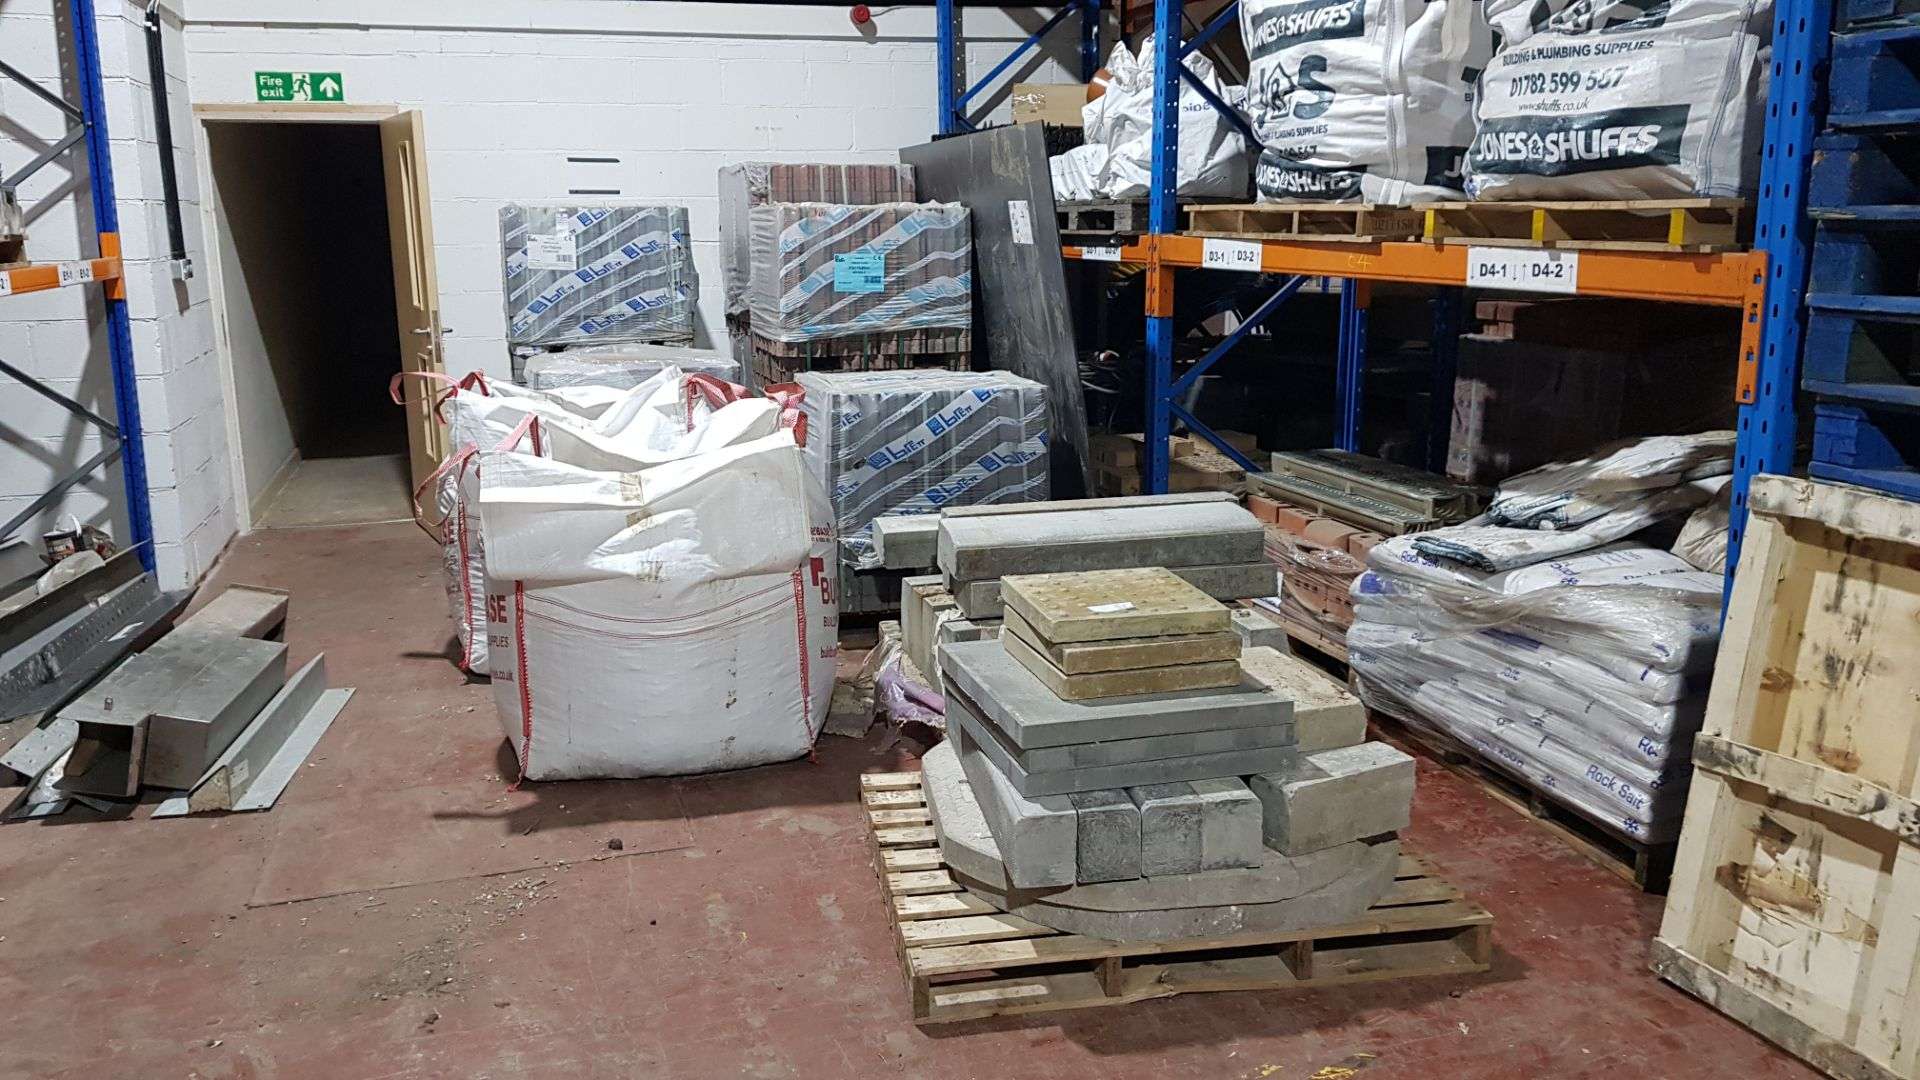 12 X PALLETS OF VARIOUS BUILDING PRODUCTS TO INCLUDE - M.O.T, FLAGS,BRAND NEW (715X115X60 PAVING